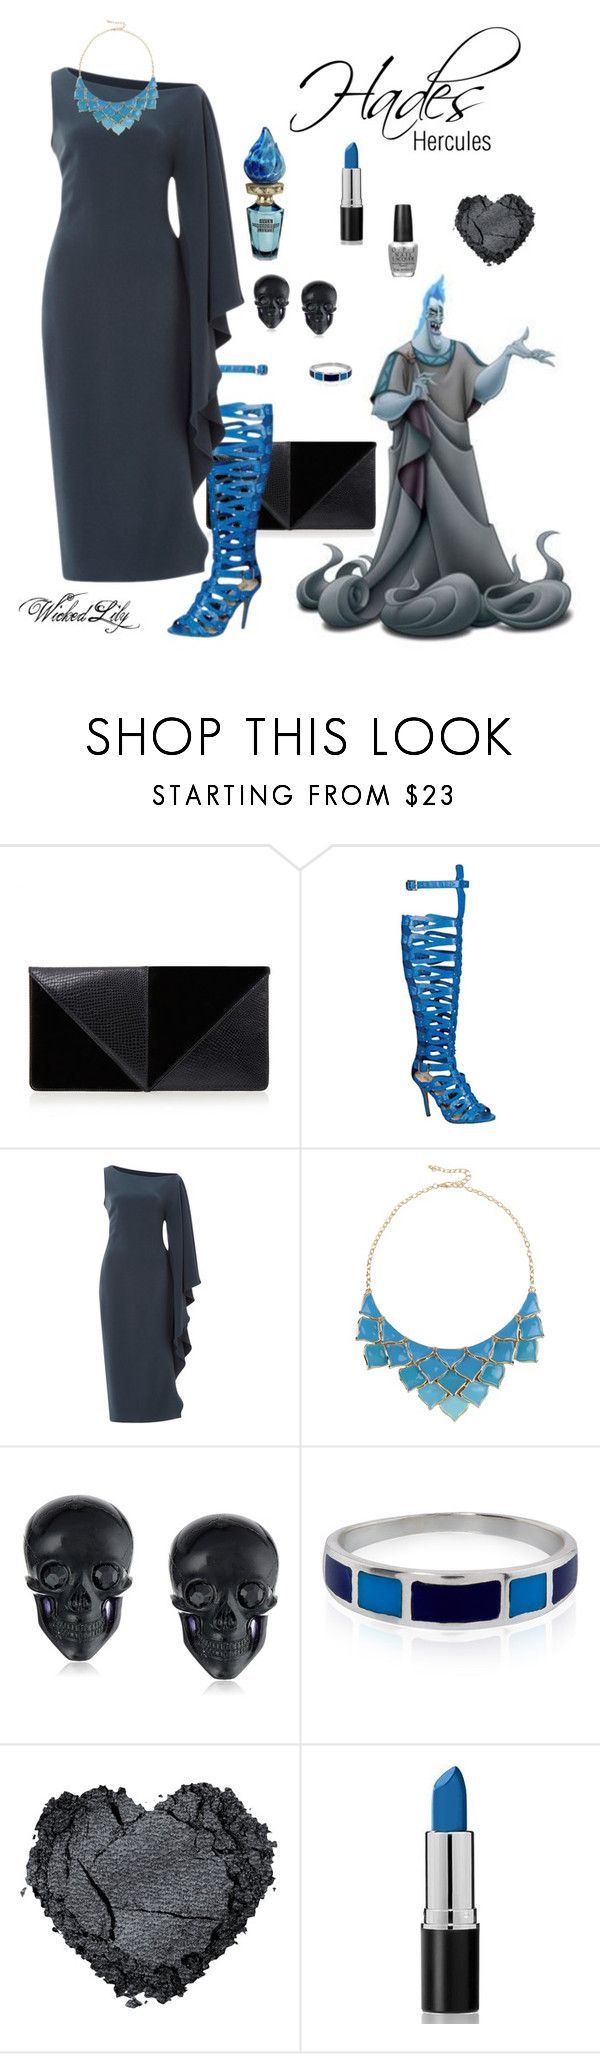 """""""Hades """"Disney Villains"""""""" by le-piano-argent ❤ liked on Polyvore featuring UN United Nude, Beston, Cushnie Et Ochs, George J. Love, Disney, Tarina Tarantino, Accessorize and OPI"""